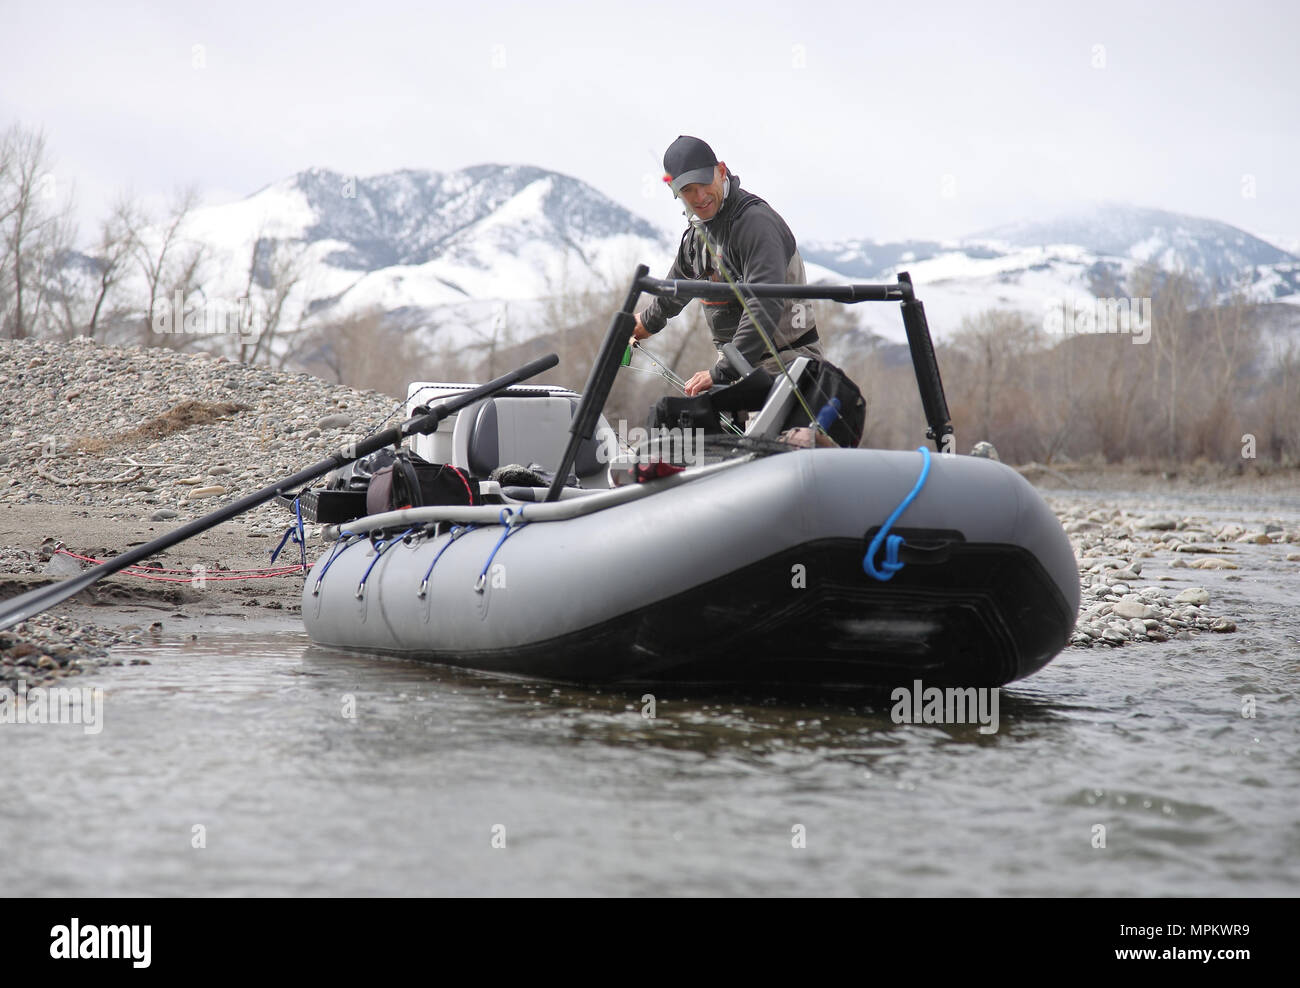 man fly fishing on river with rubber pontoon raft - Stock Image